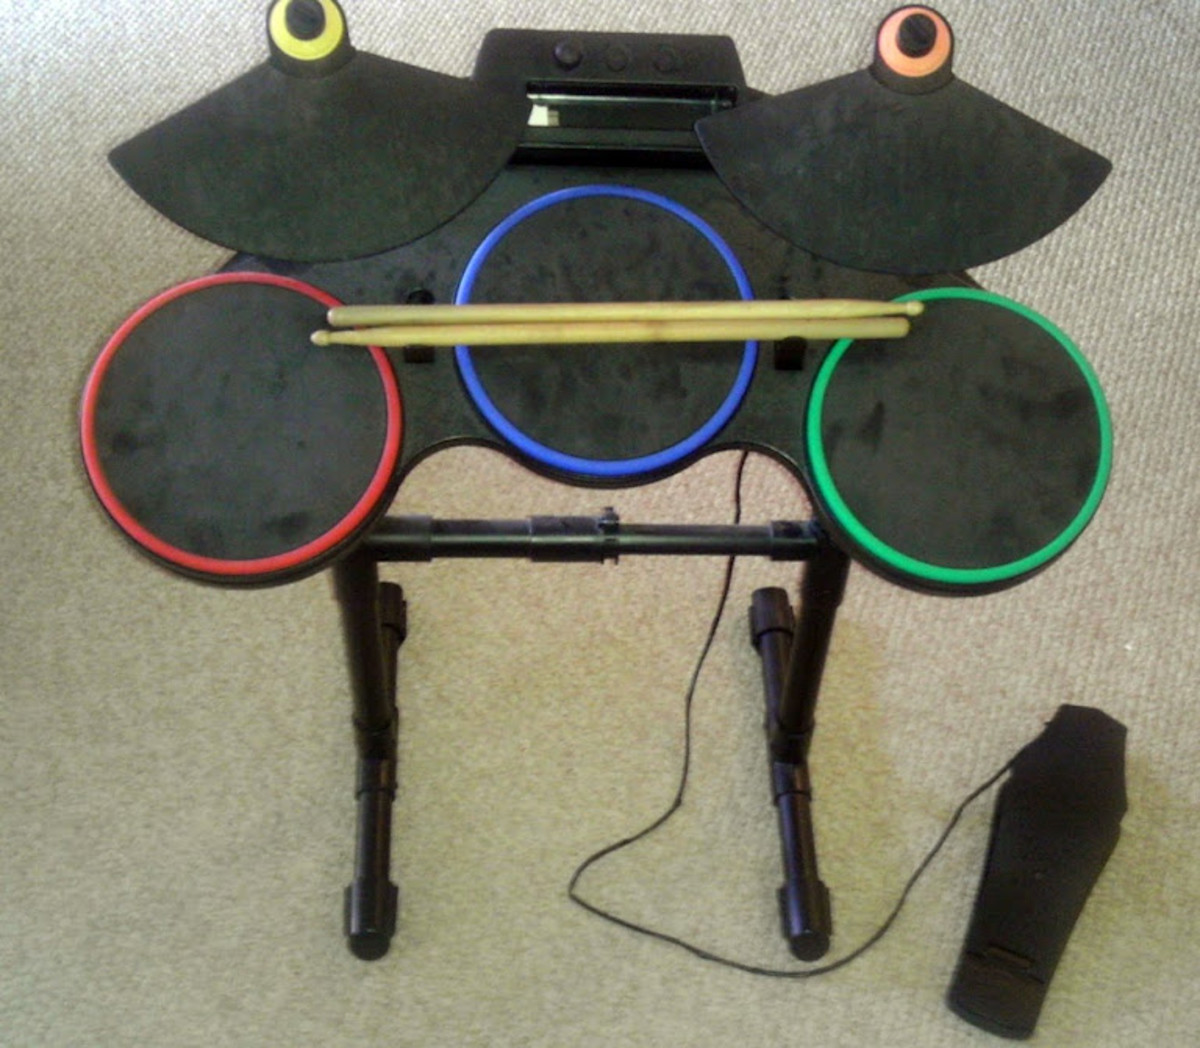 The loneliest drum set. Bring in a friend and your band automatically gets cooler.